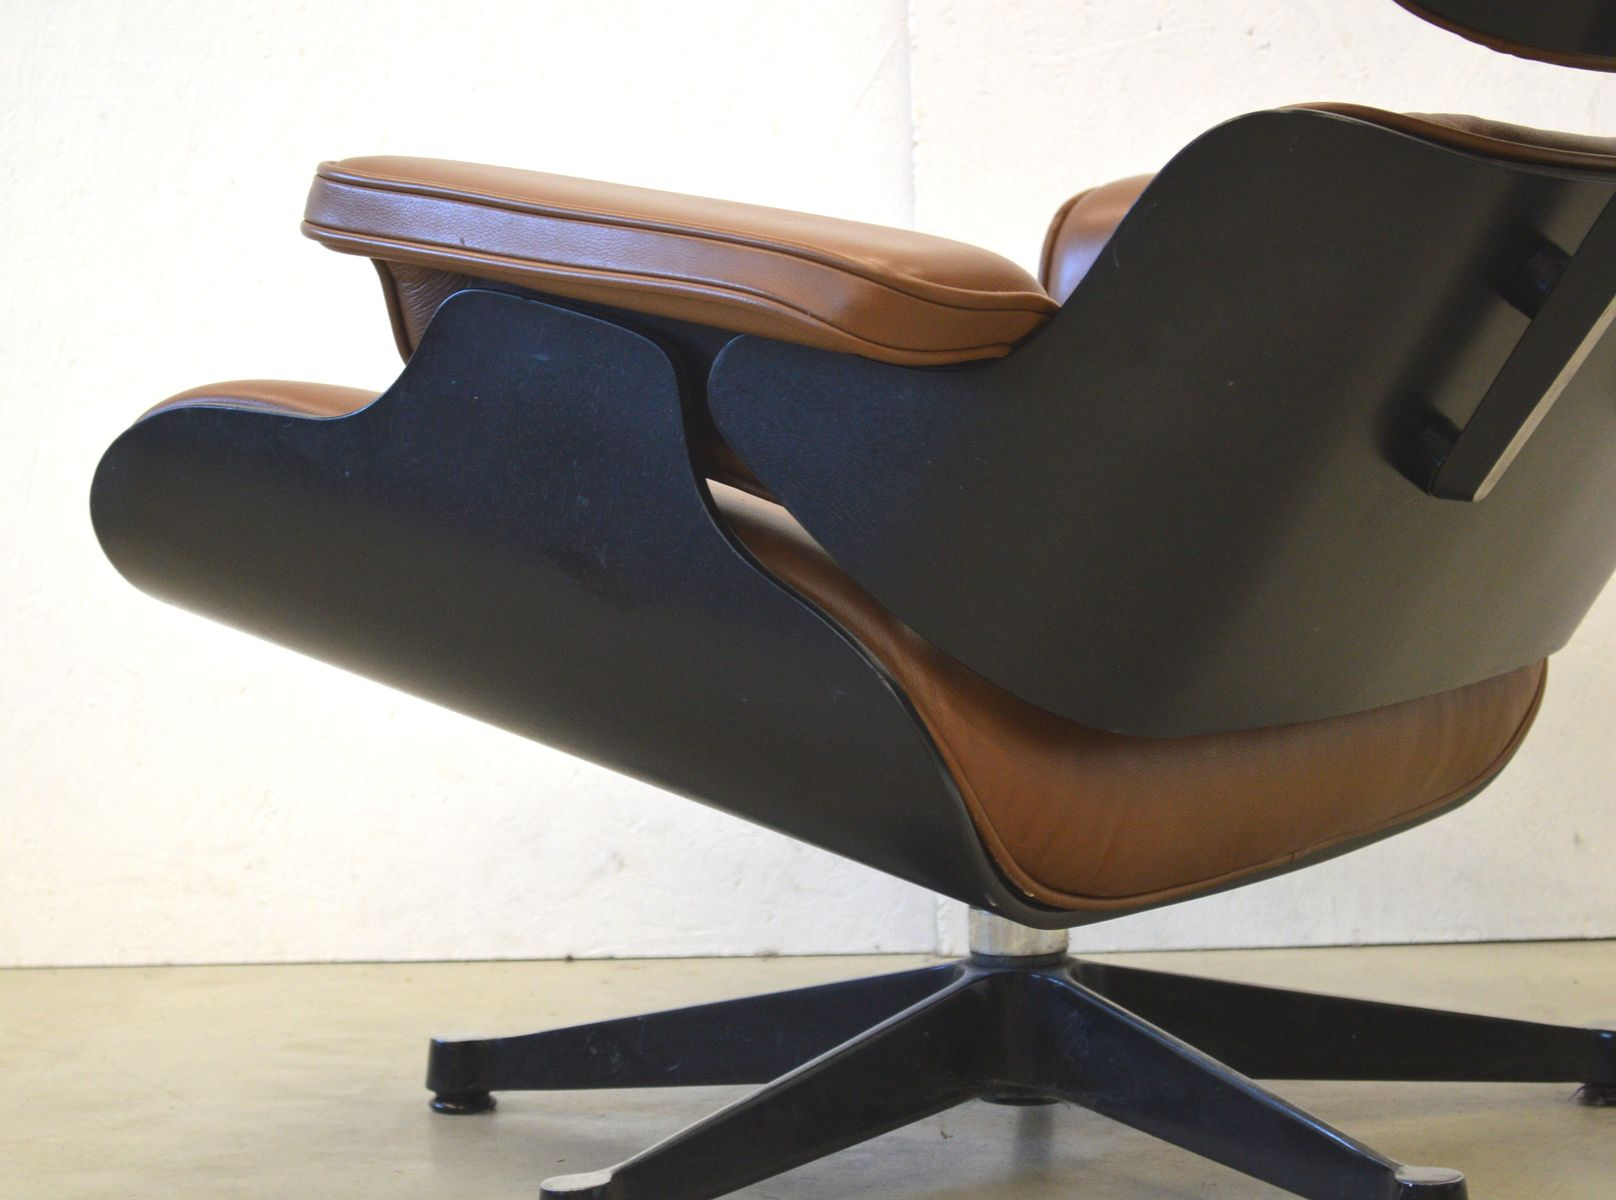 mid brown leather lounge chair ottoman by charles ray. Black Bedroom Furniture Sets. Home Design Ideas